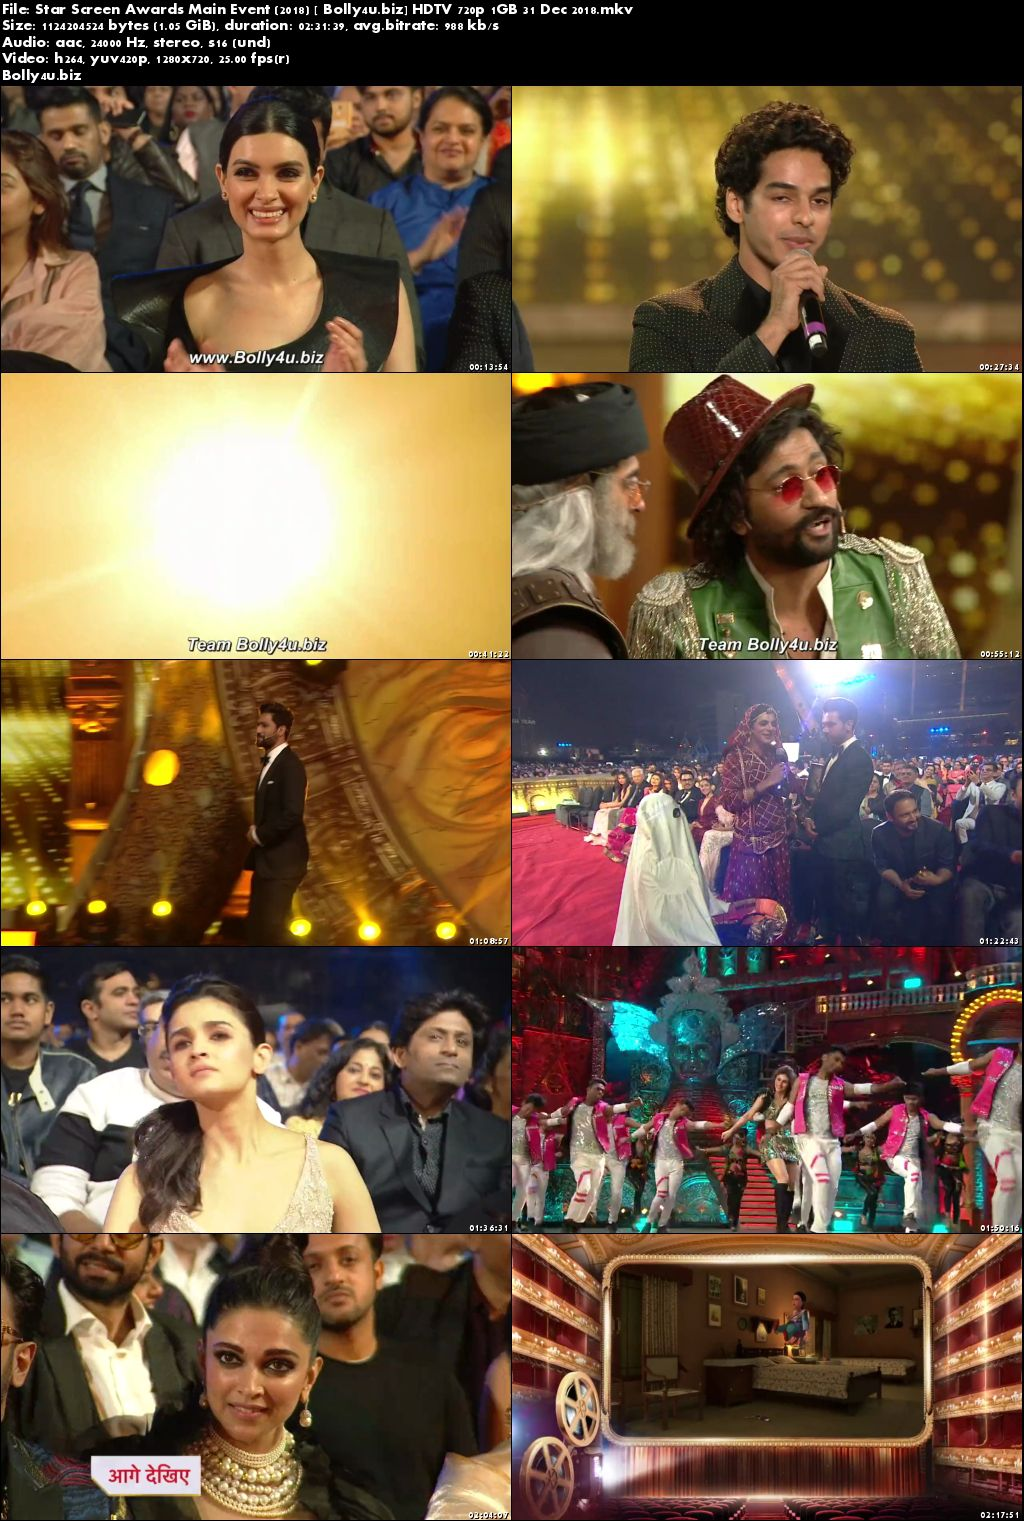 Star Screen Awards 2018 HDTV 1GB Main Event 31 Dec 2018 720p Download